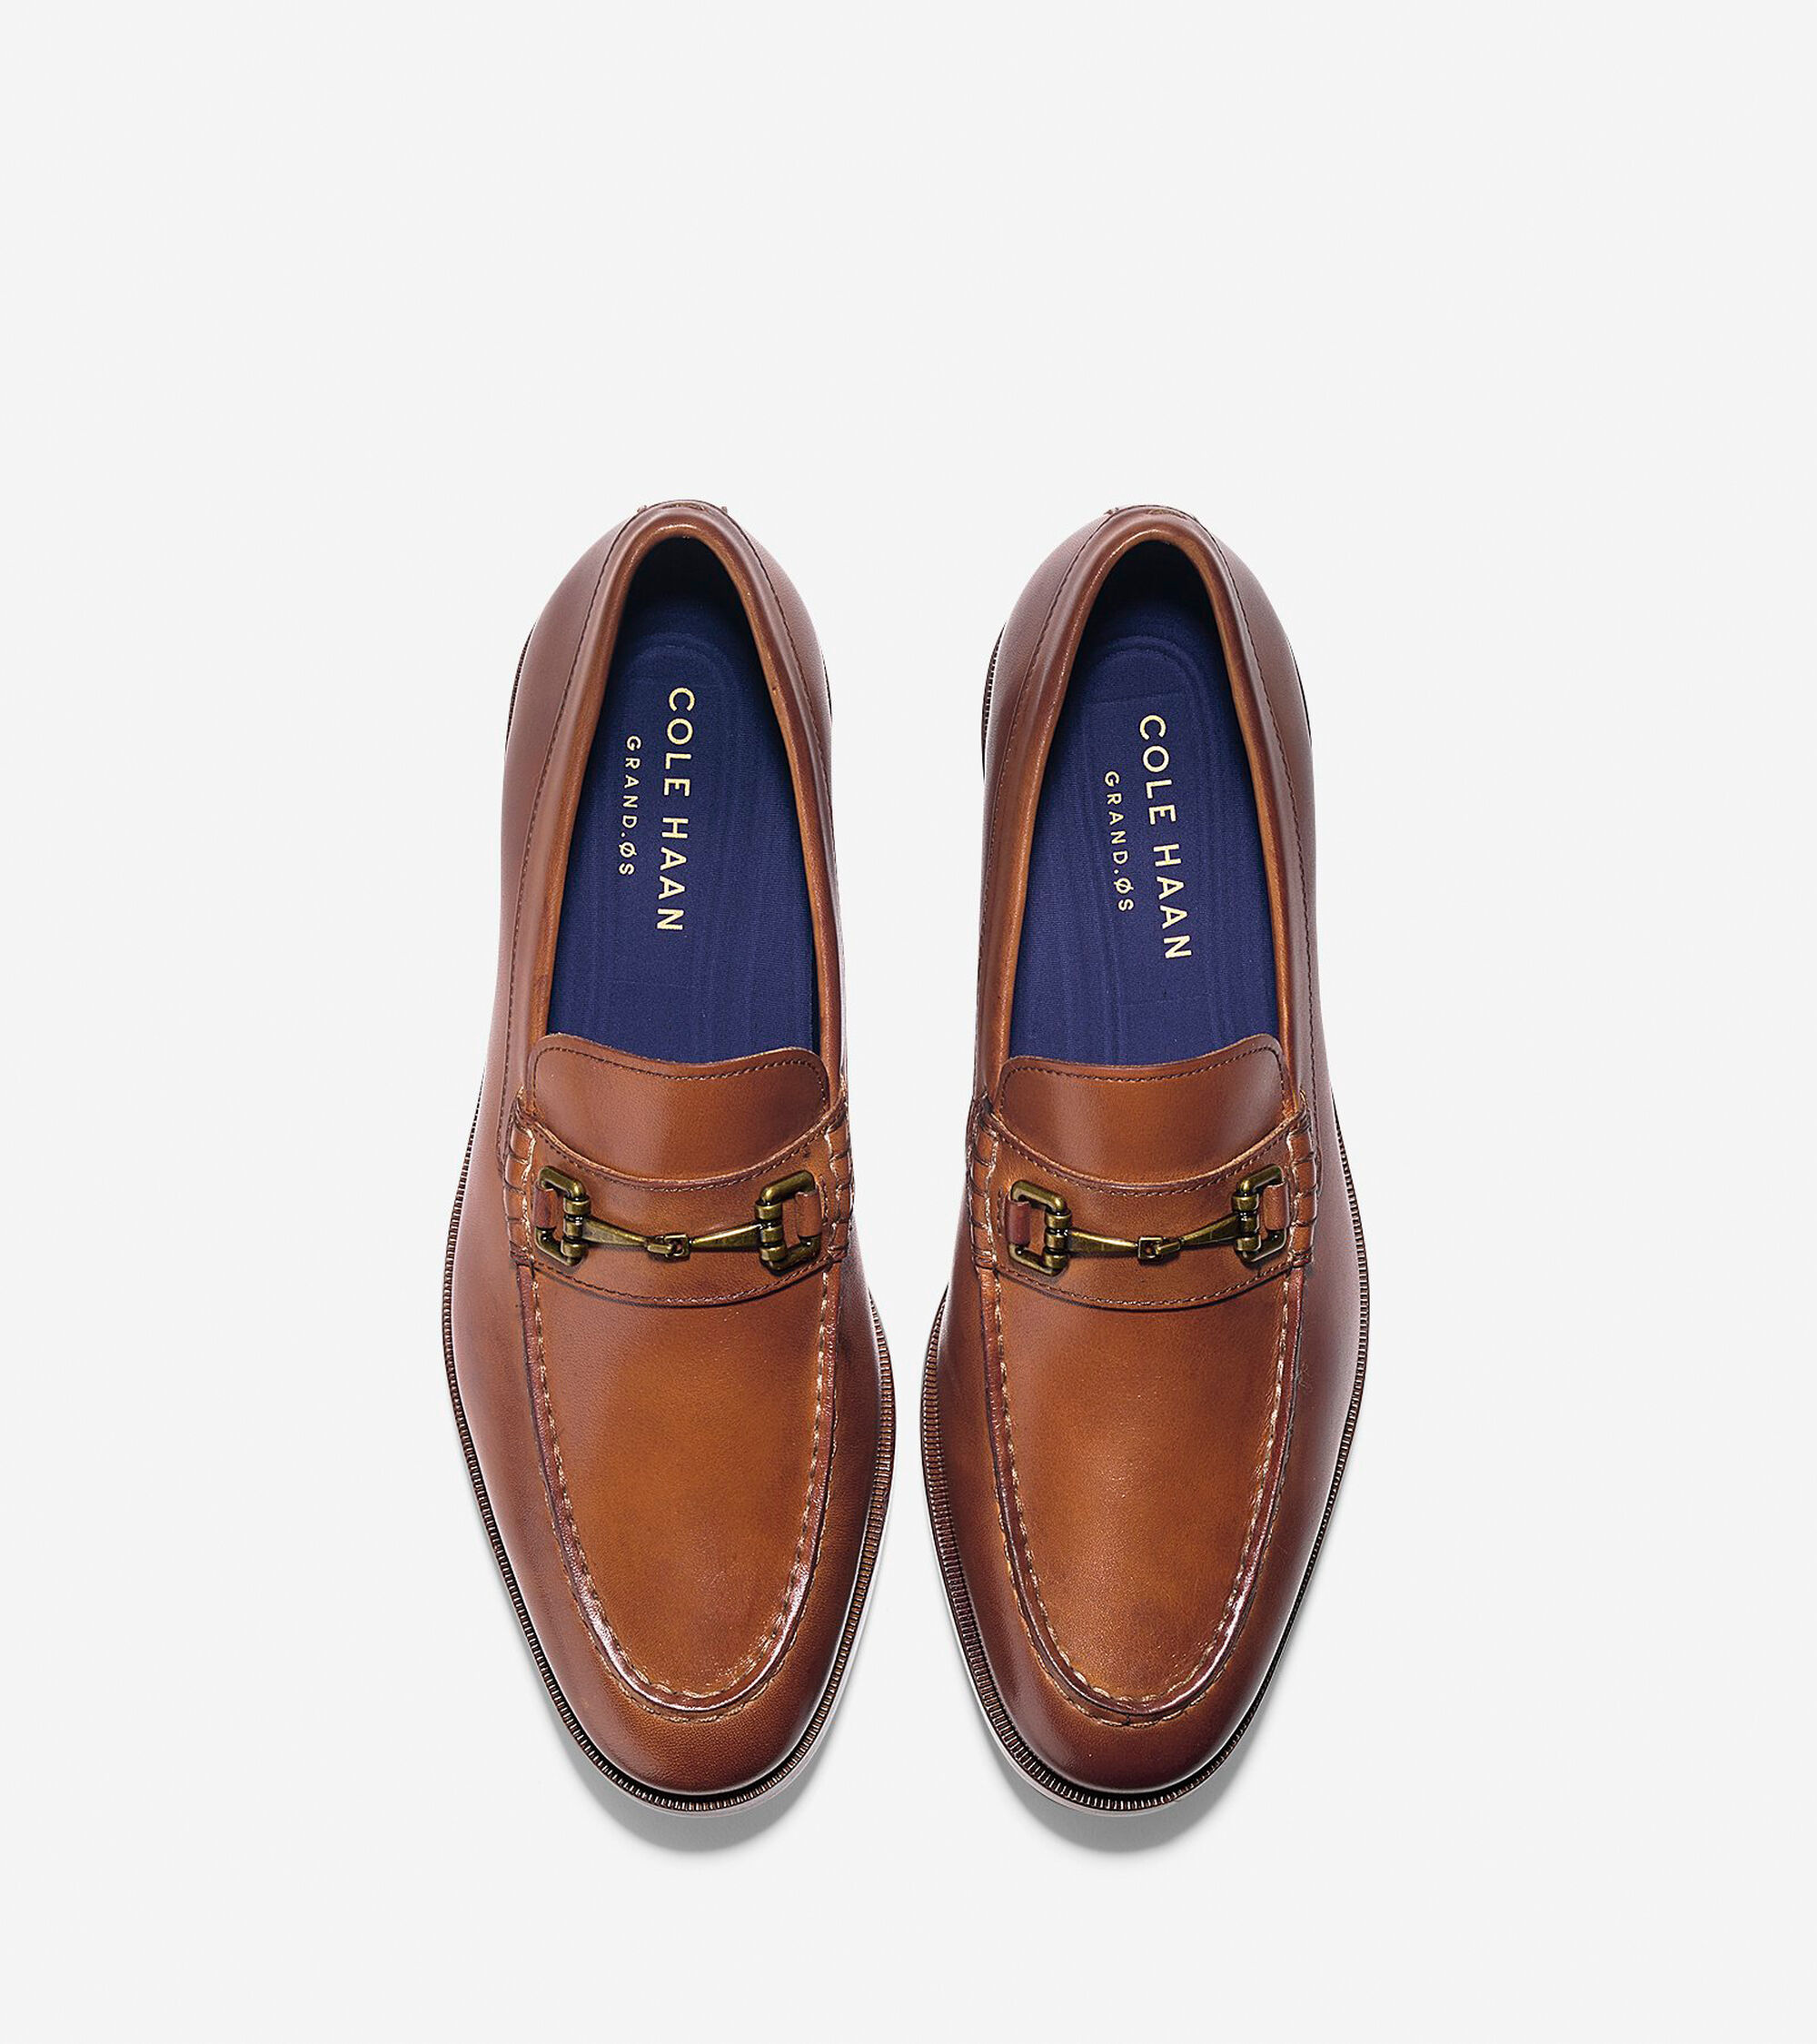 910fed5651d Men s Hamilton Grand Bit Loafers in British Tan